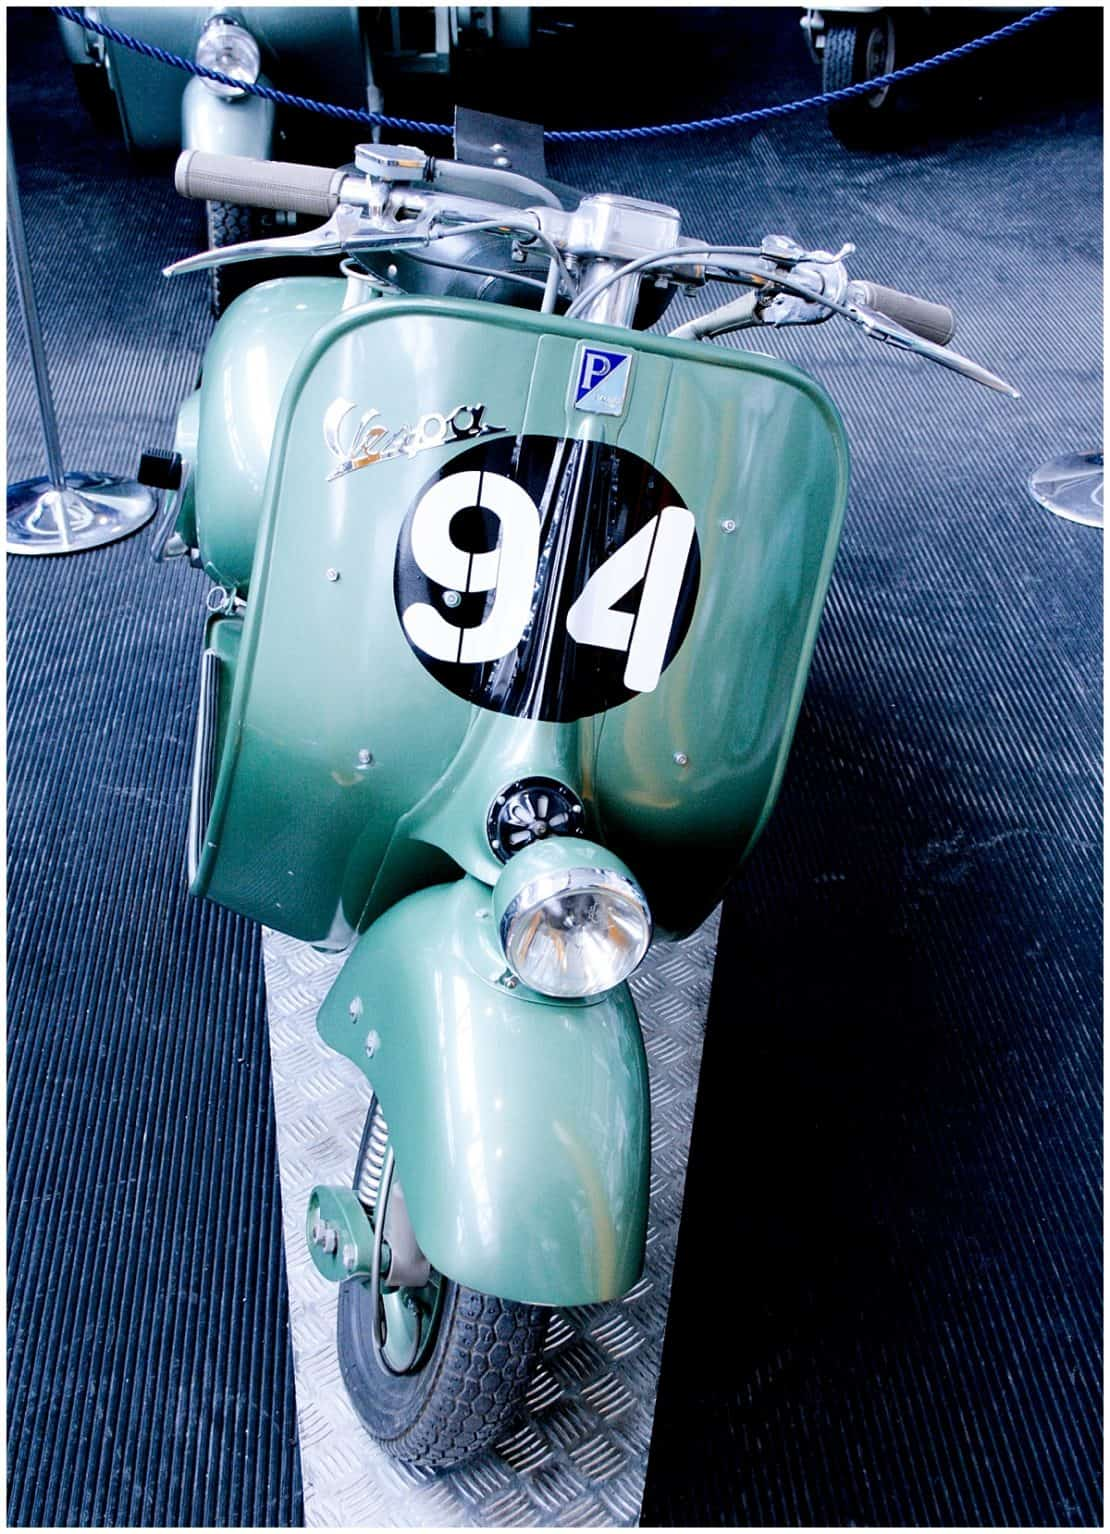 The Vespa Piaggio Museum in Tuscany, Italy. An unusual thing to do and an intriguing story. Via @insidetravellab